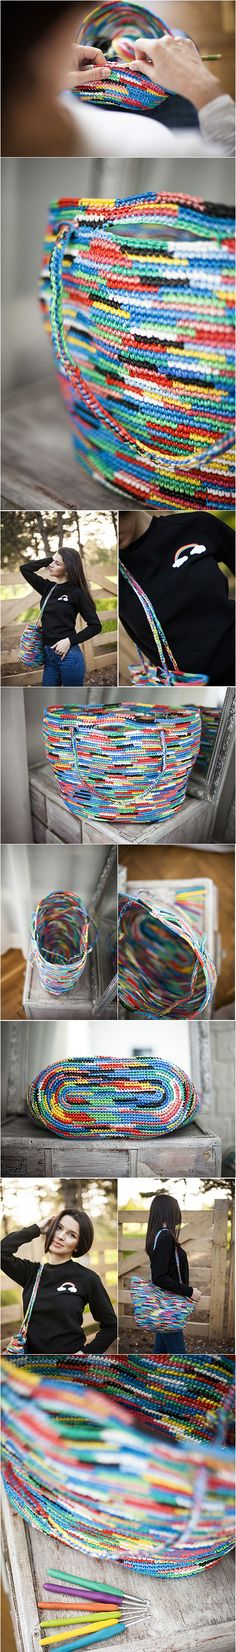 rainbow bag, plarn crochet tote, summer bag, upcycling, recycling, market bags